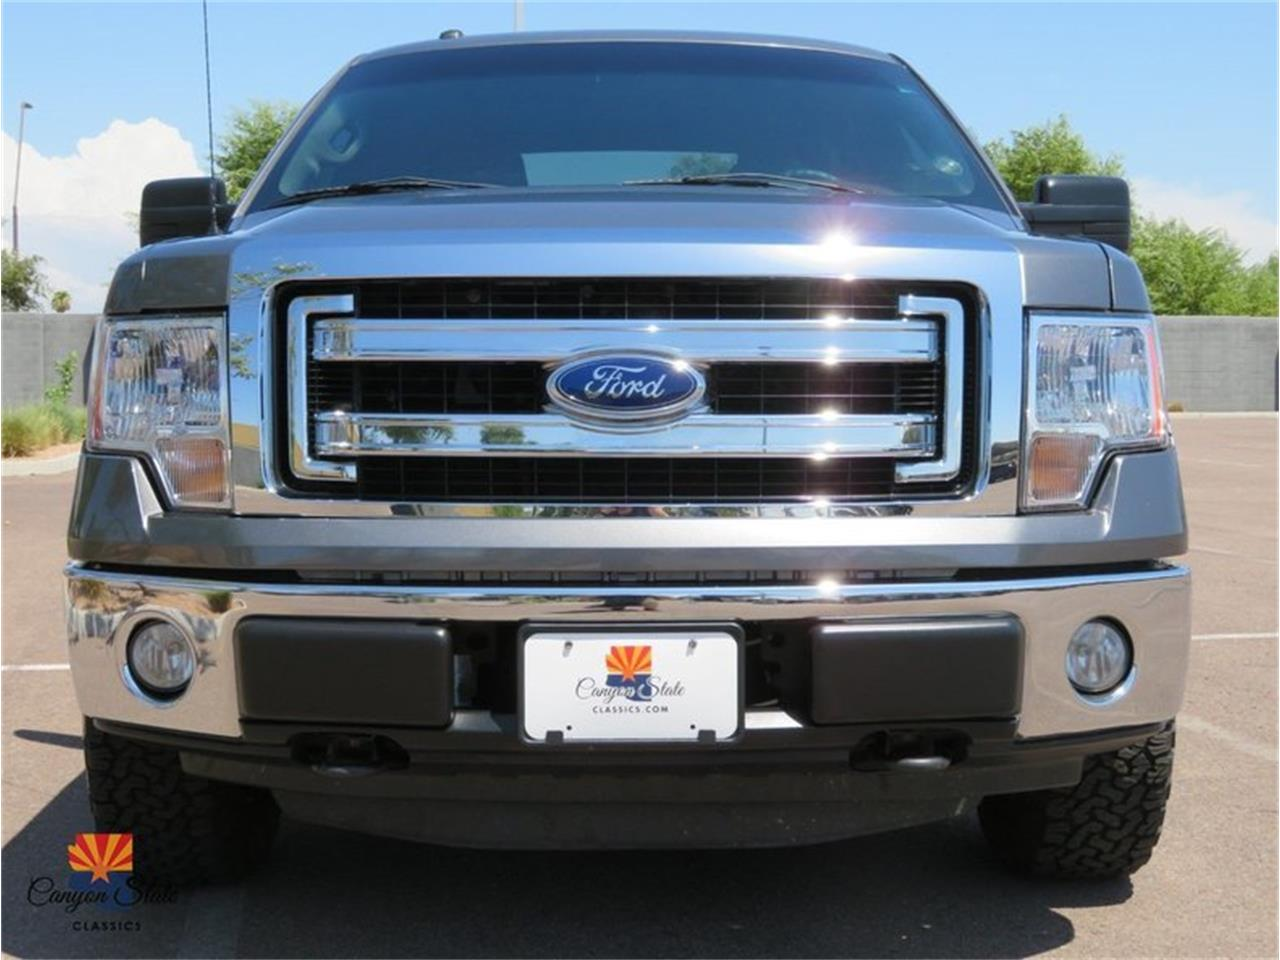 2014 Ford F150 for sale in Tempe, AZ – photo 24